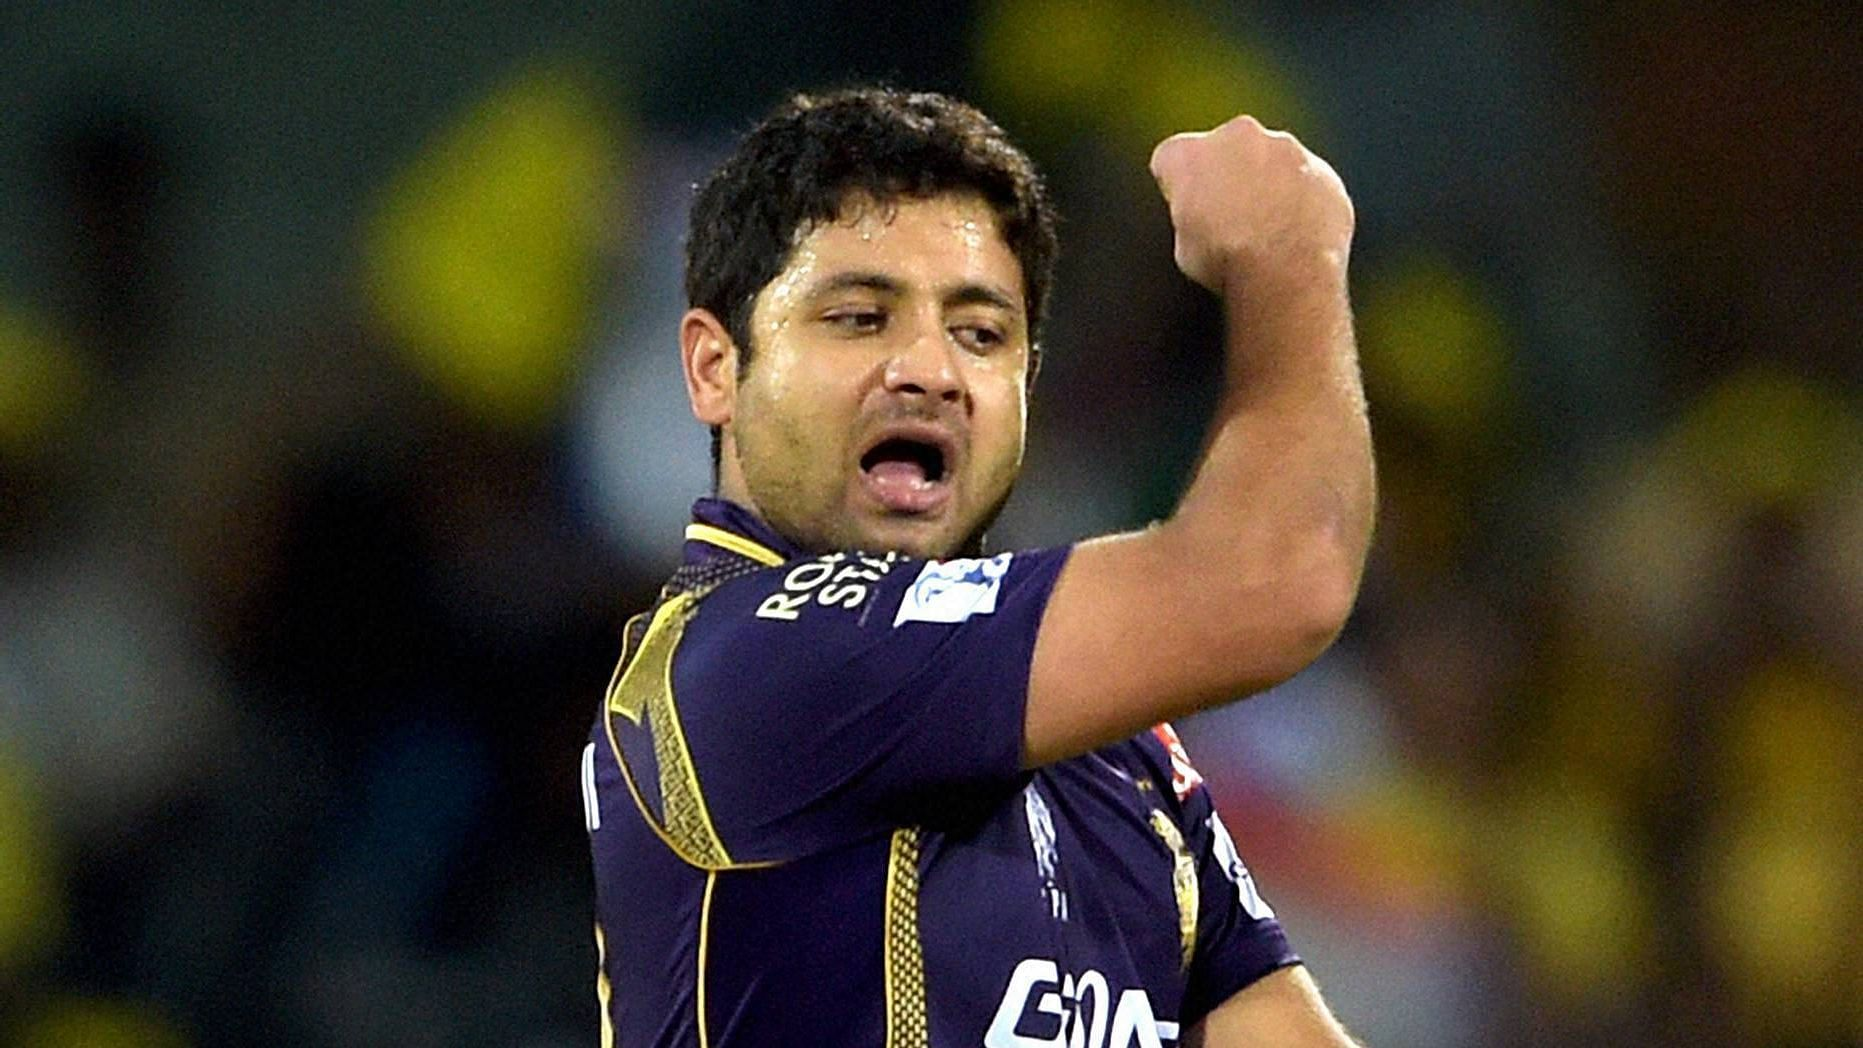 IPL Auction: Piyush Chawla Becomes Most Expensive Indian, Yet